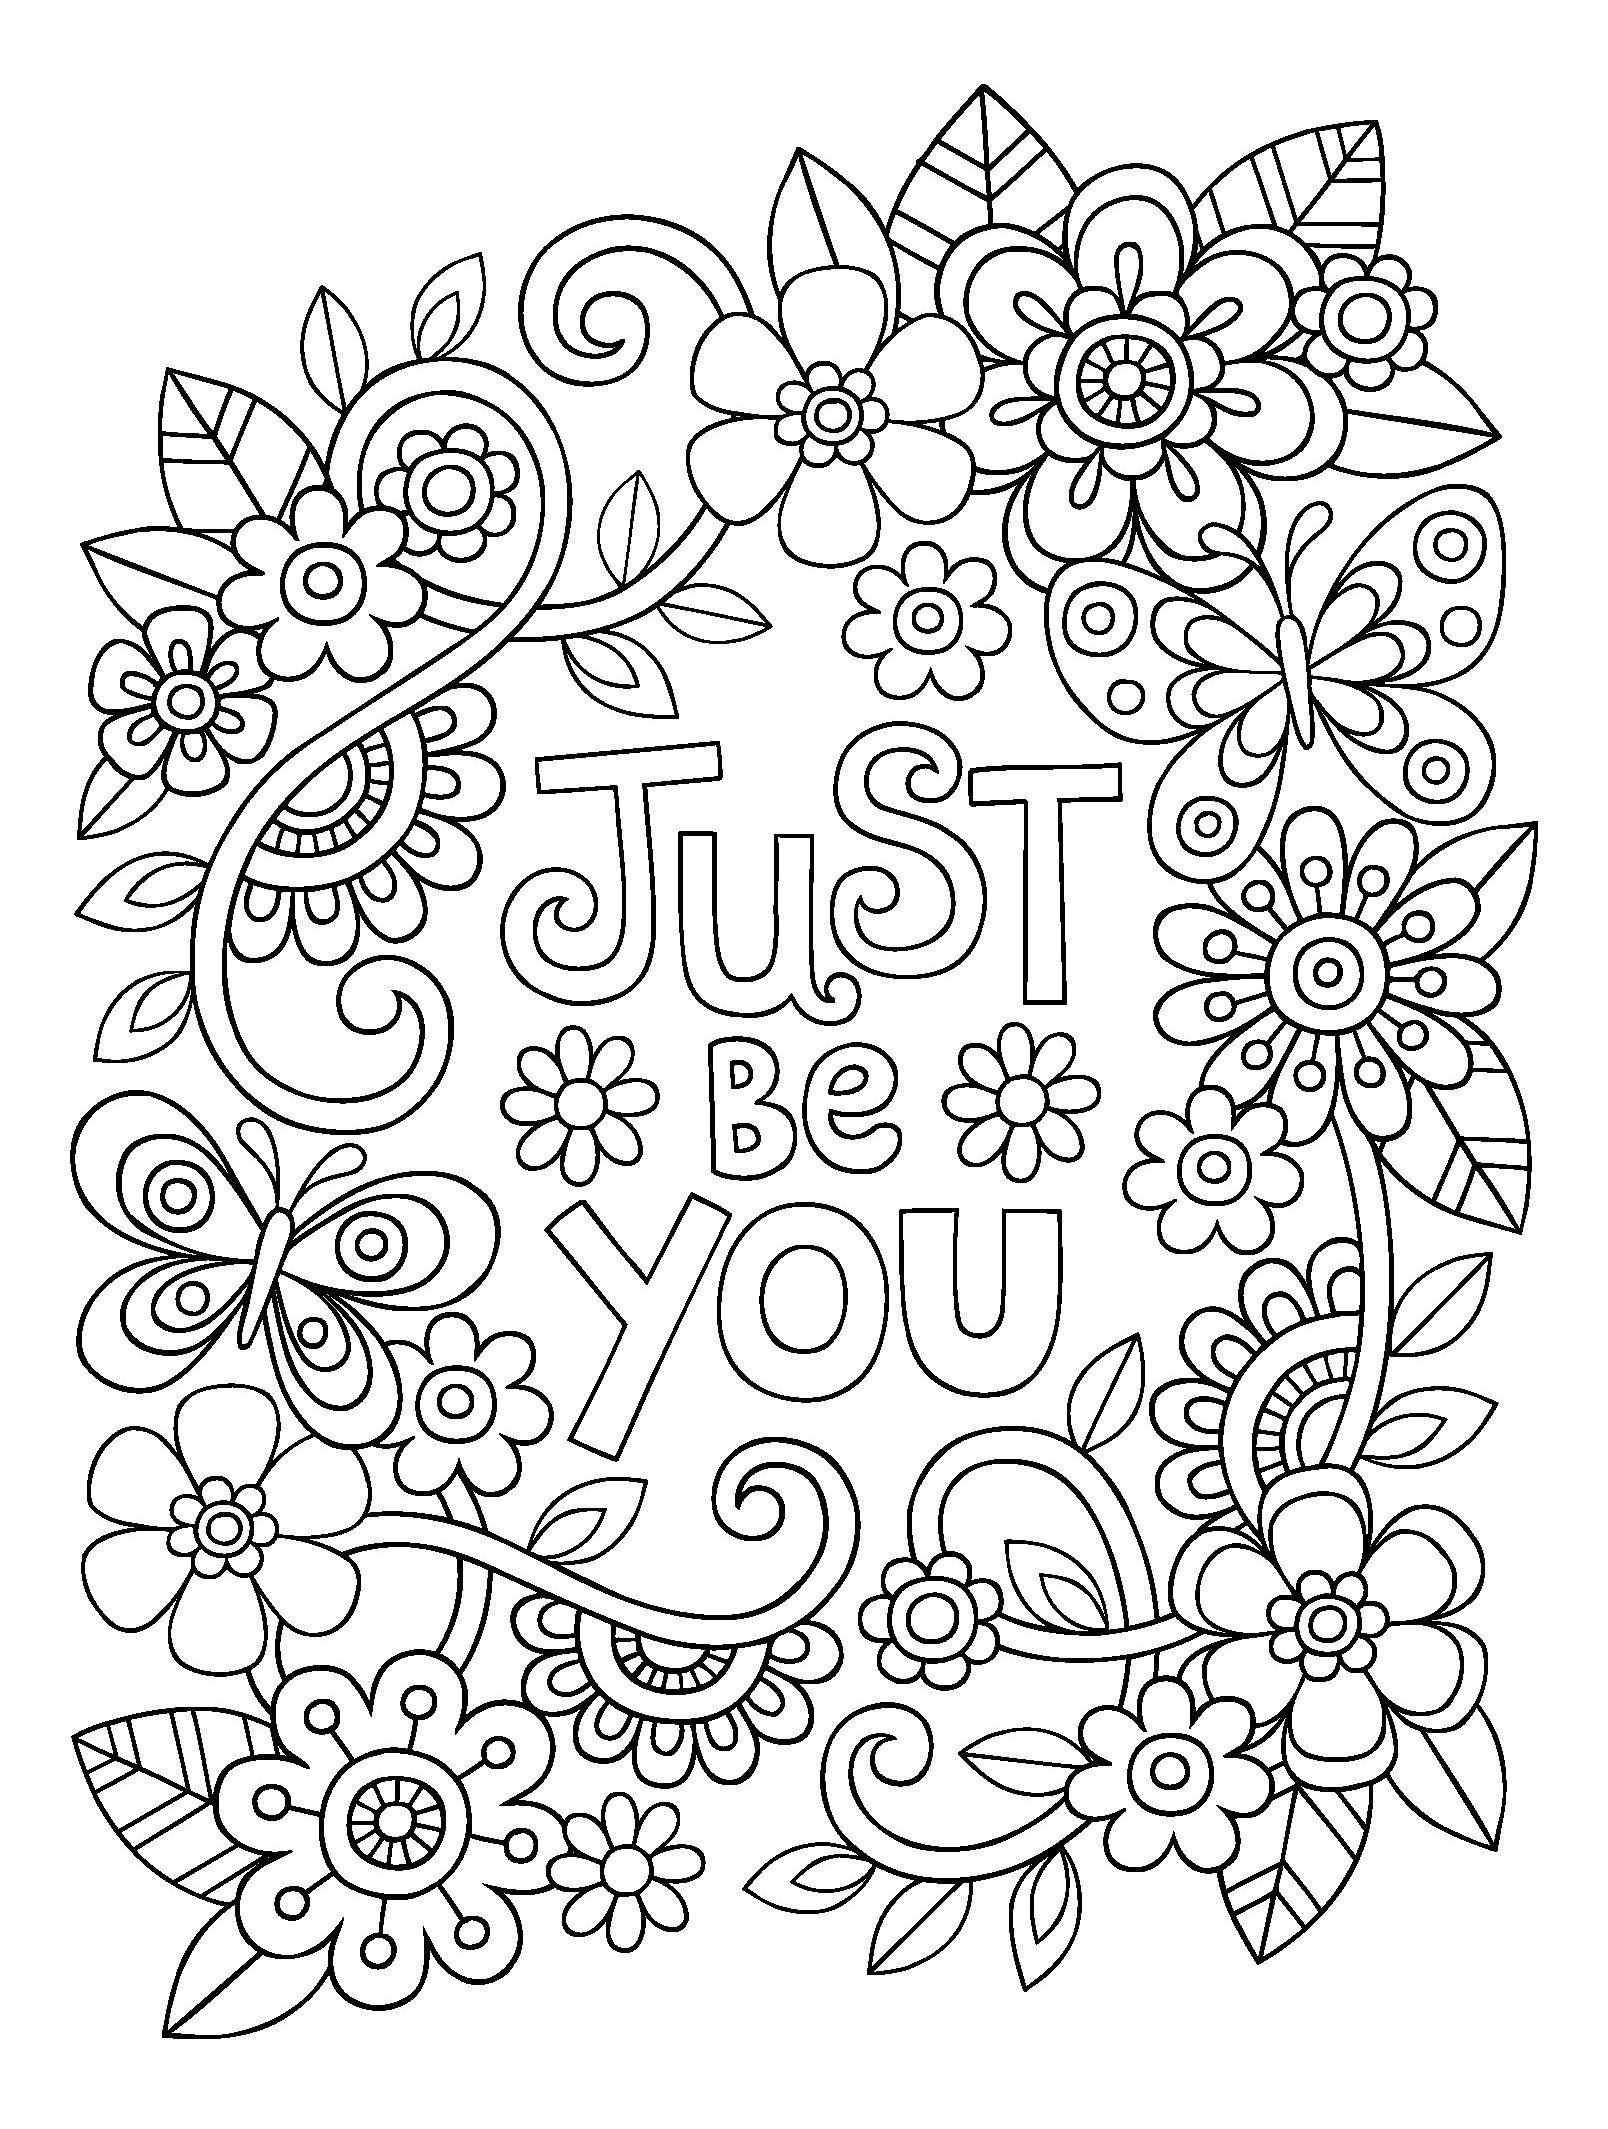 Related image | Coloring pages, Coloring book pages, Quote ... | free printable inspirational coloring pages for adults